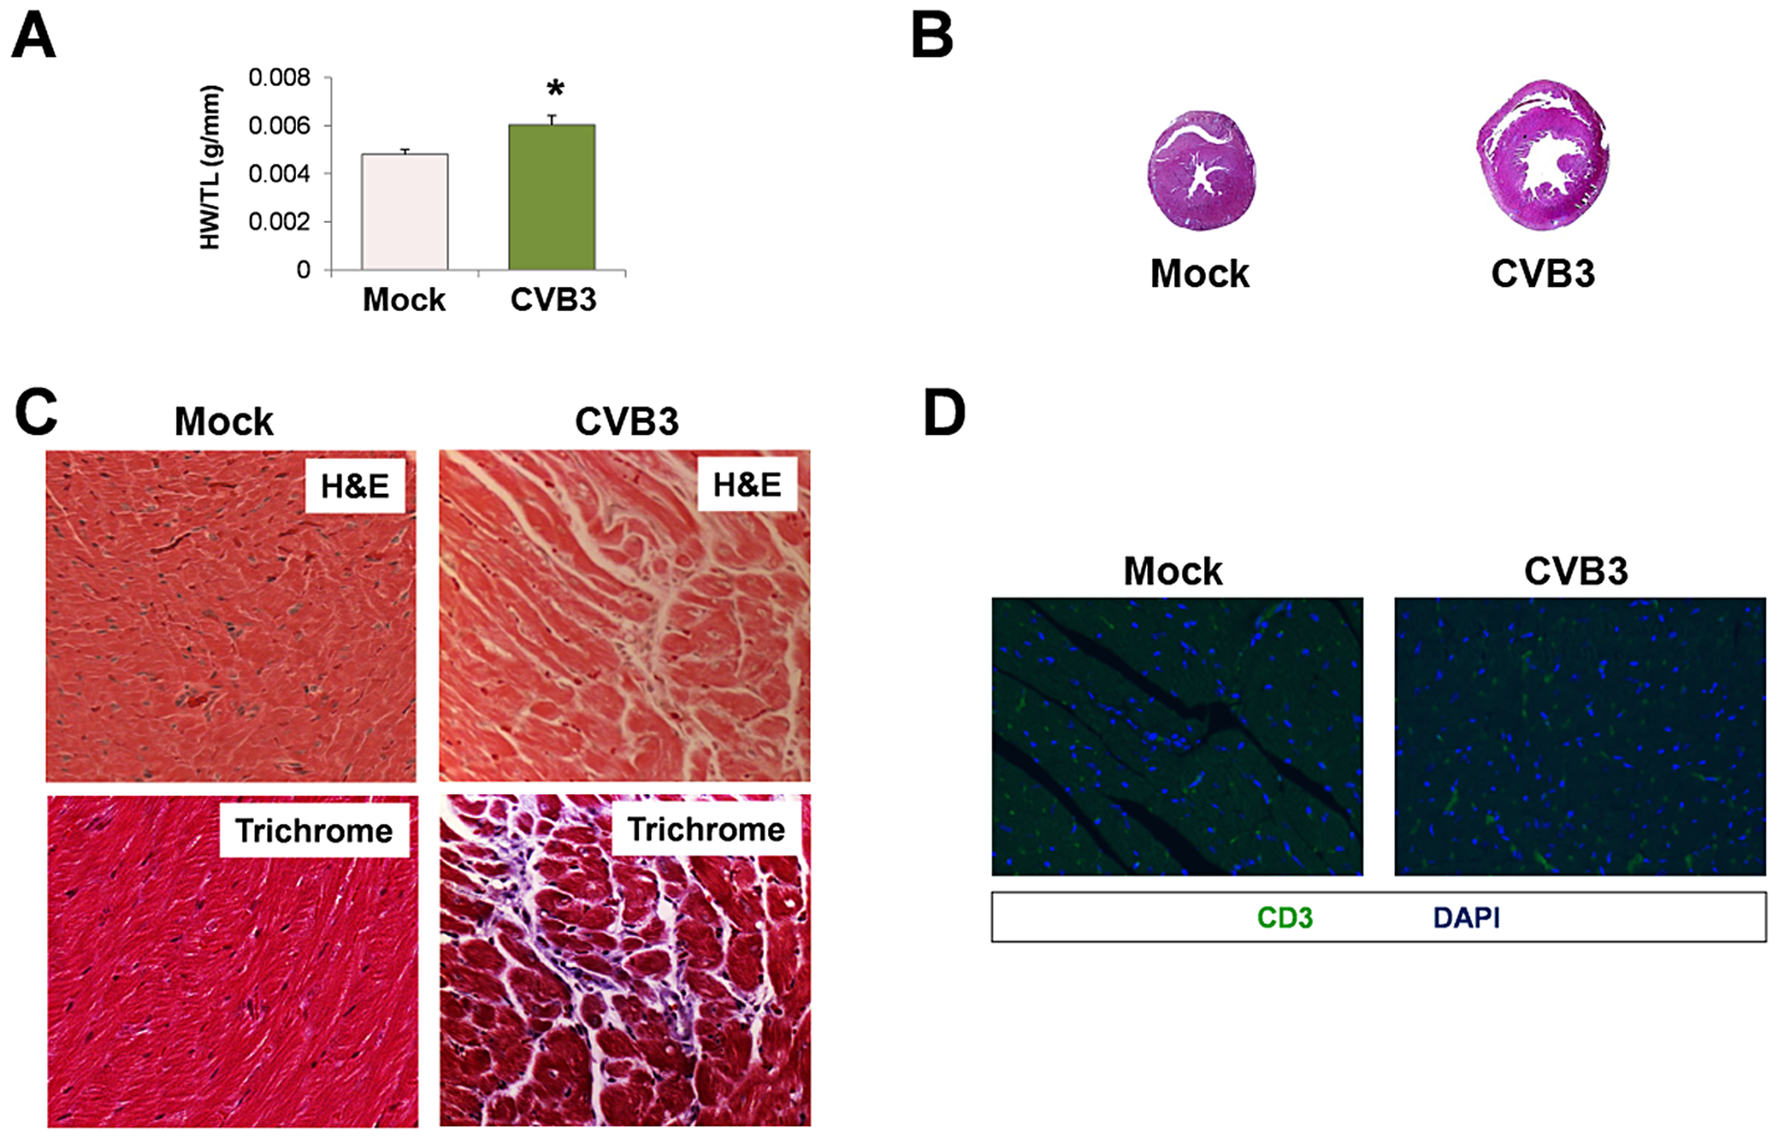 Exercise-induced cardiac hypertrophy in adult mice infected with CVB3 at an early age leads to dilated cardiomyopathy.